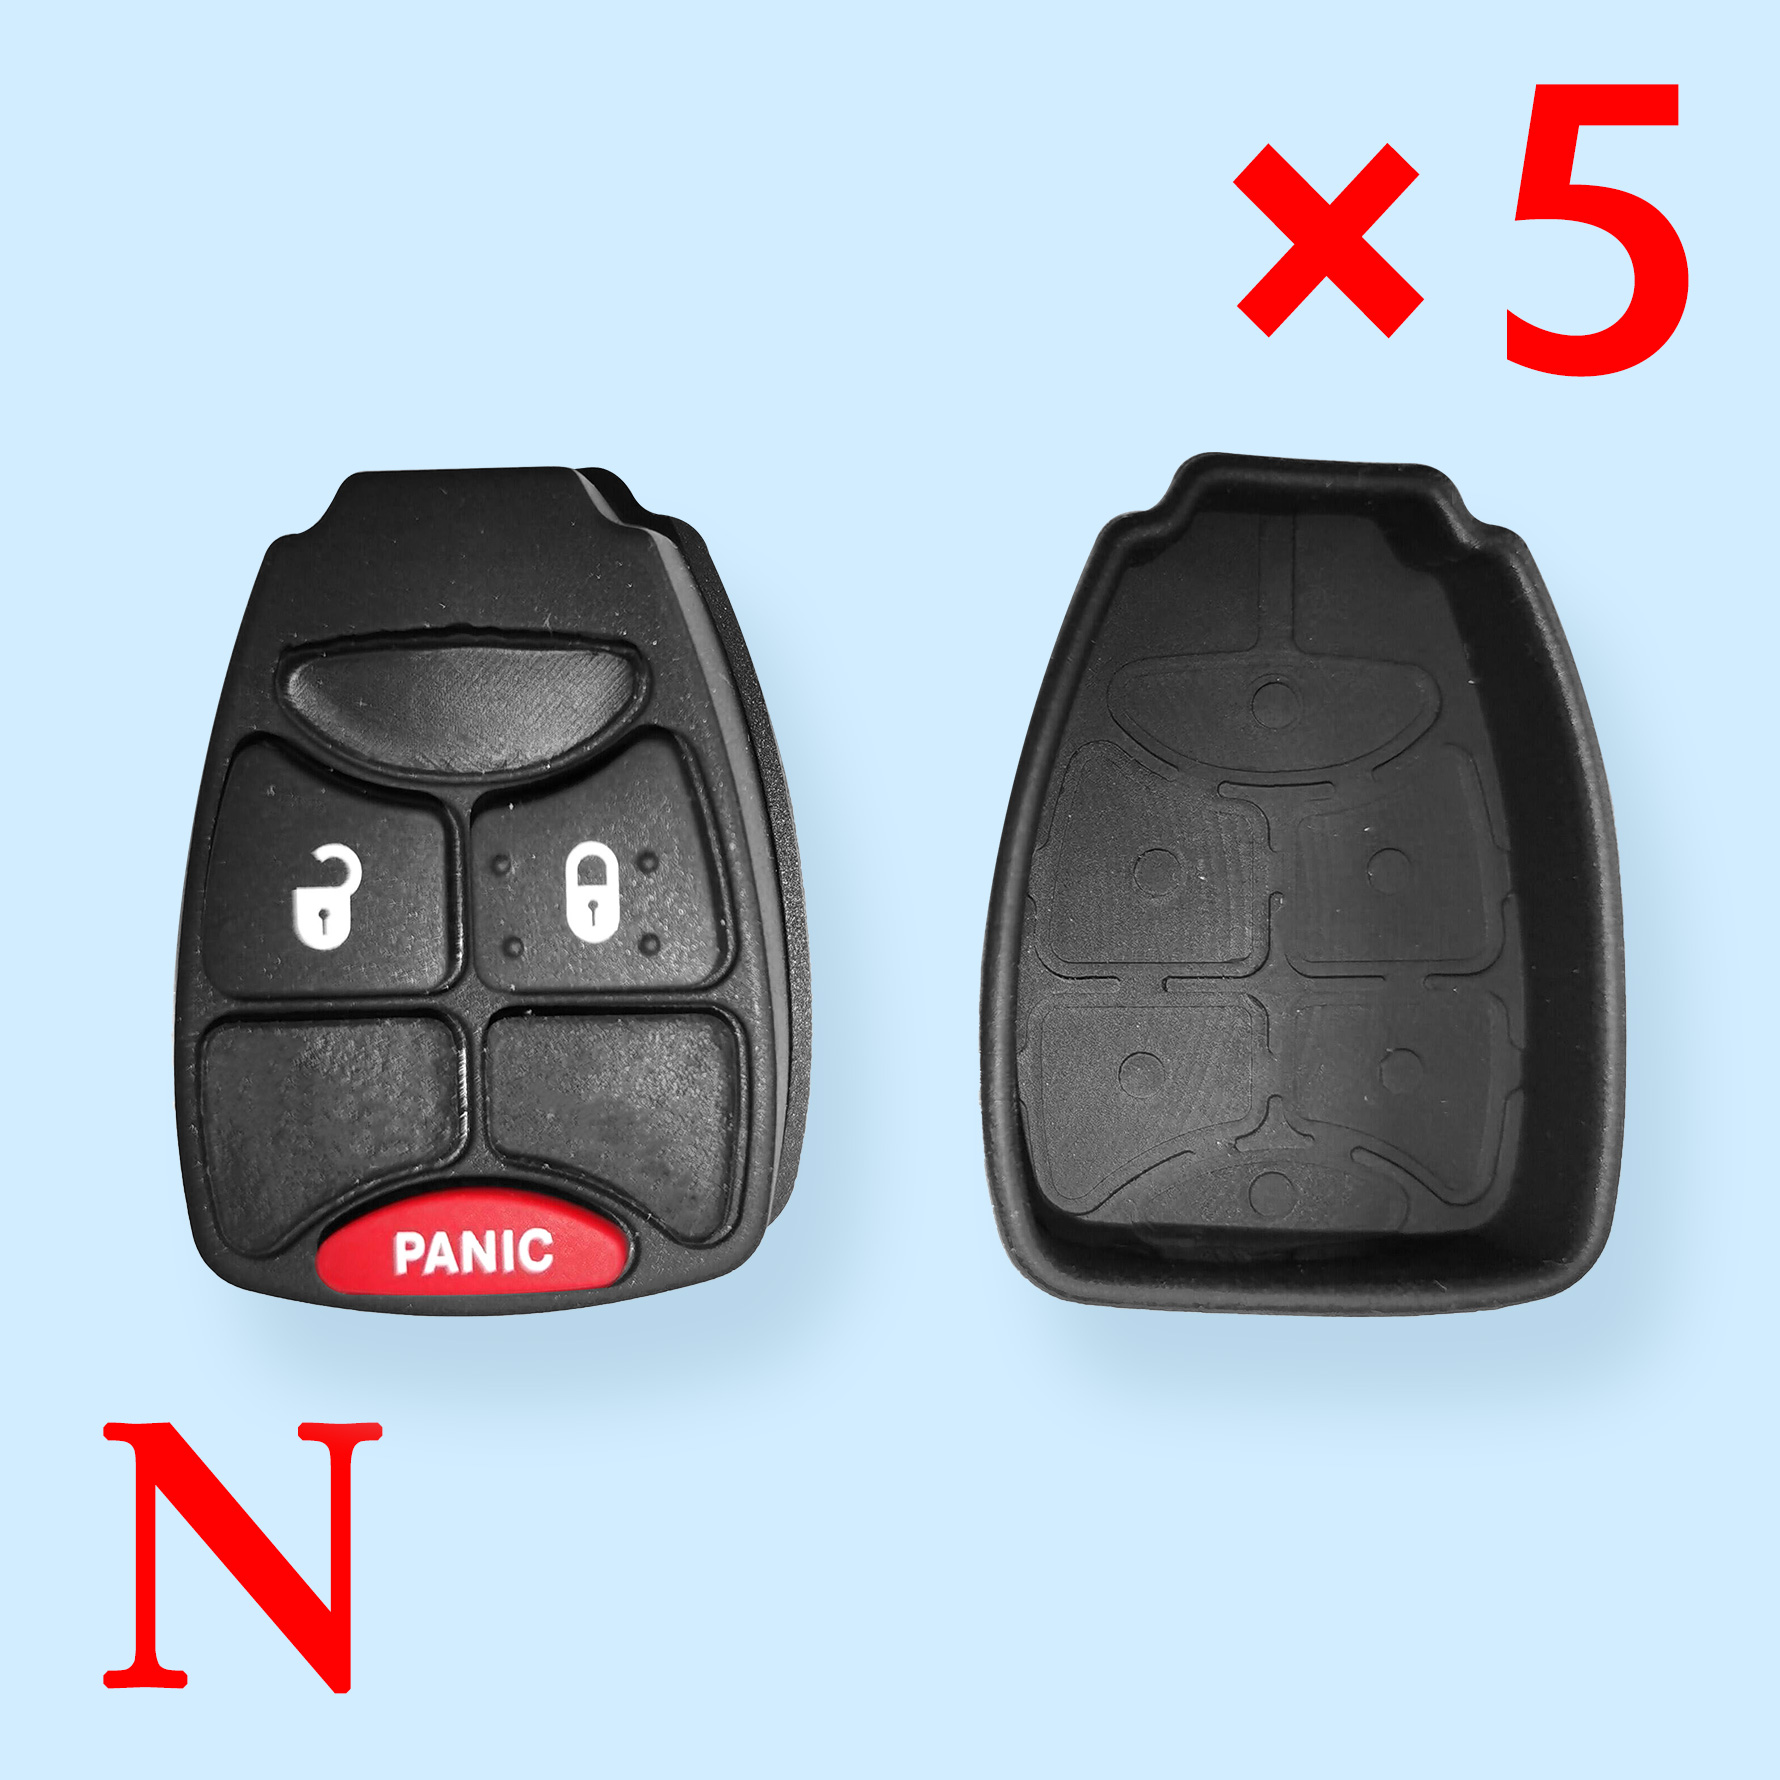 2 + 1 Buttons Rubber Pad for Chrysler Jeep Dodge - Pack of 5